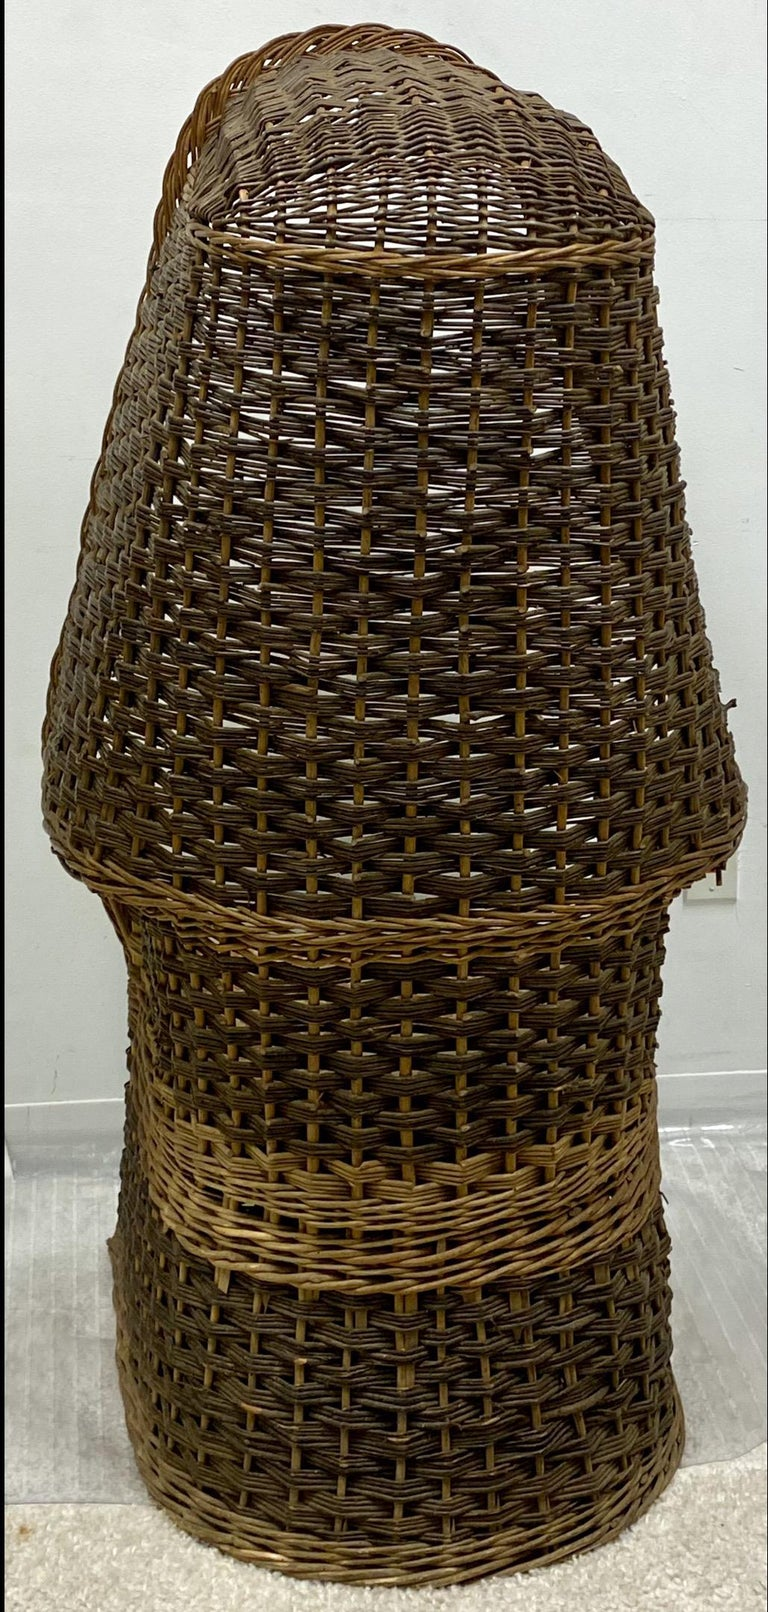 Victorian 1930s Hand Woven Wicker Porter's Chair For Sale